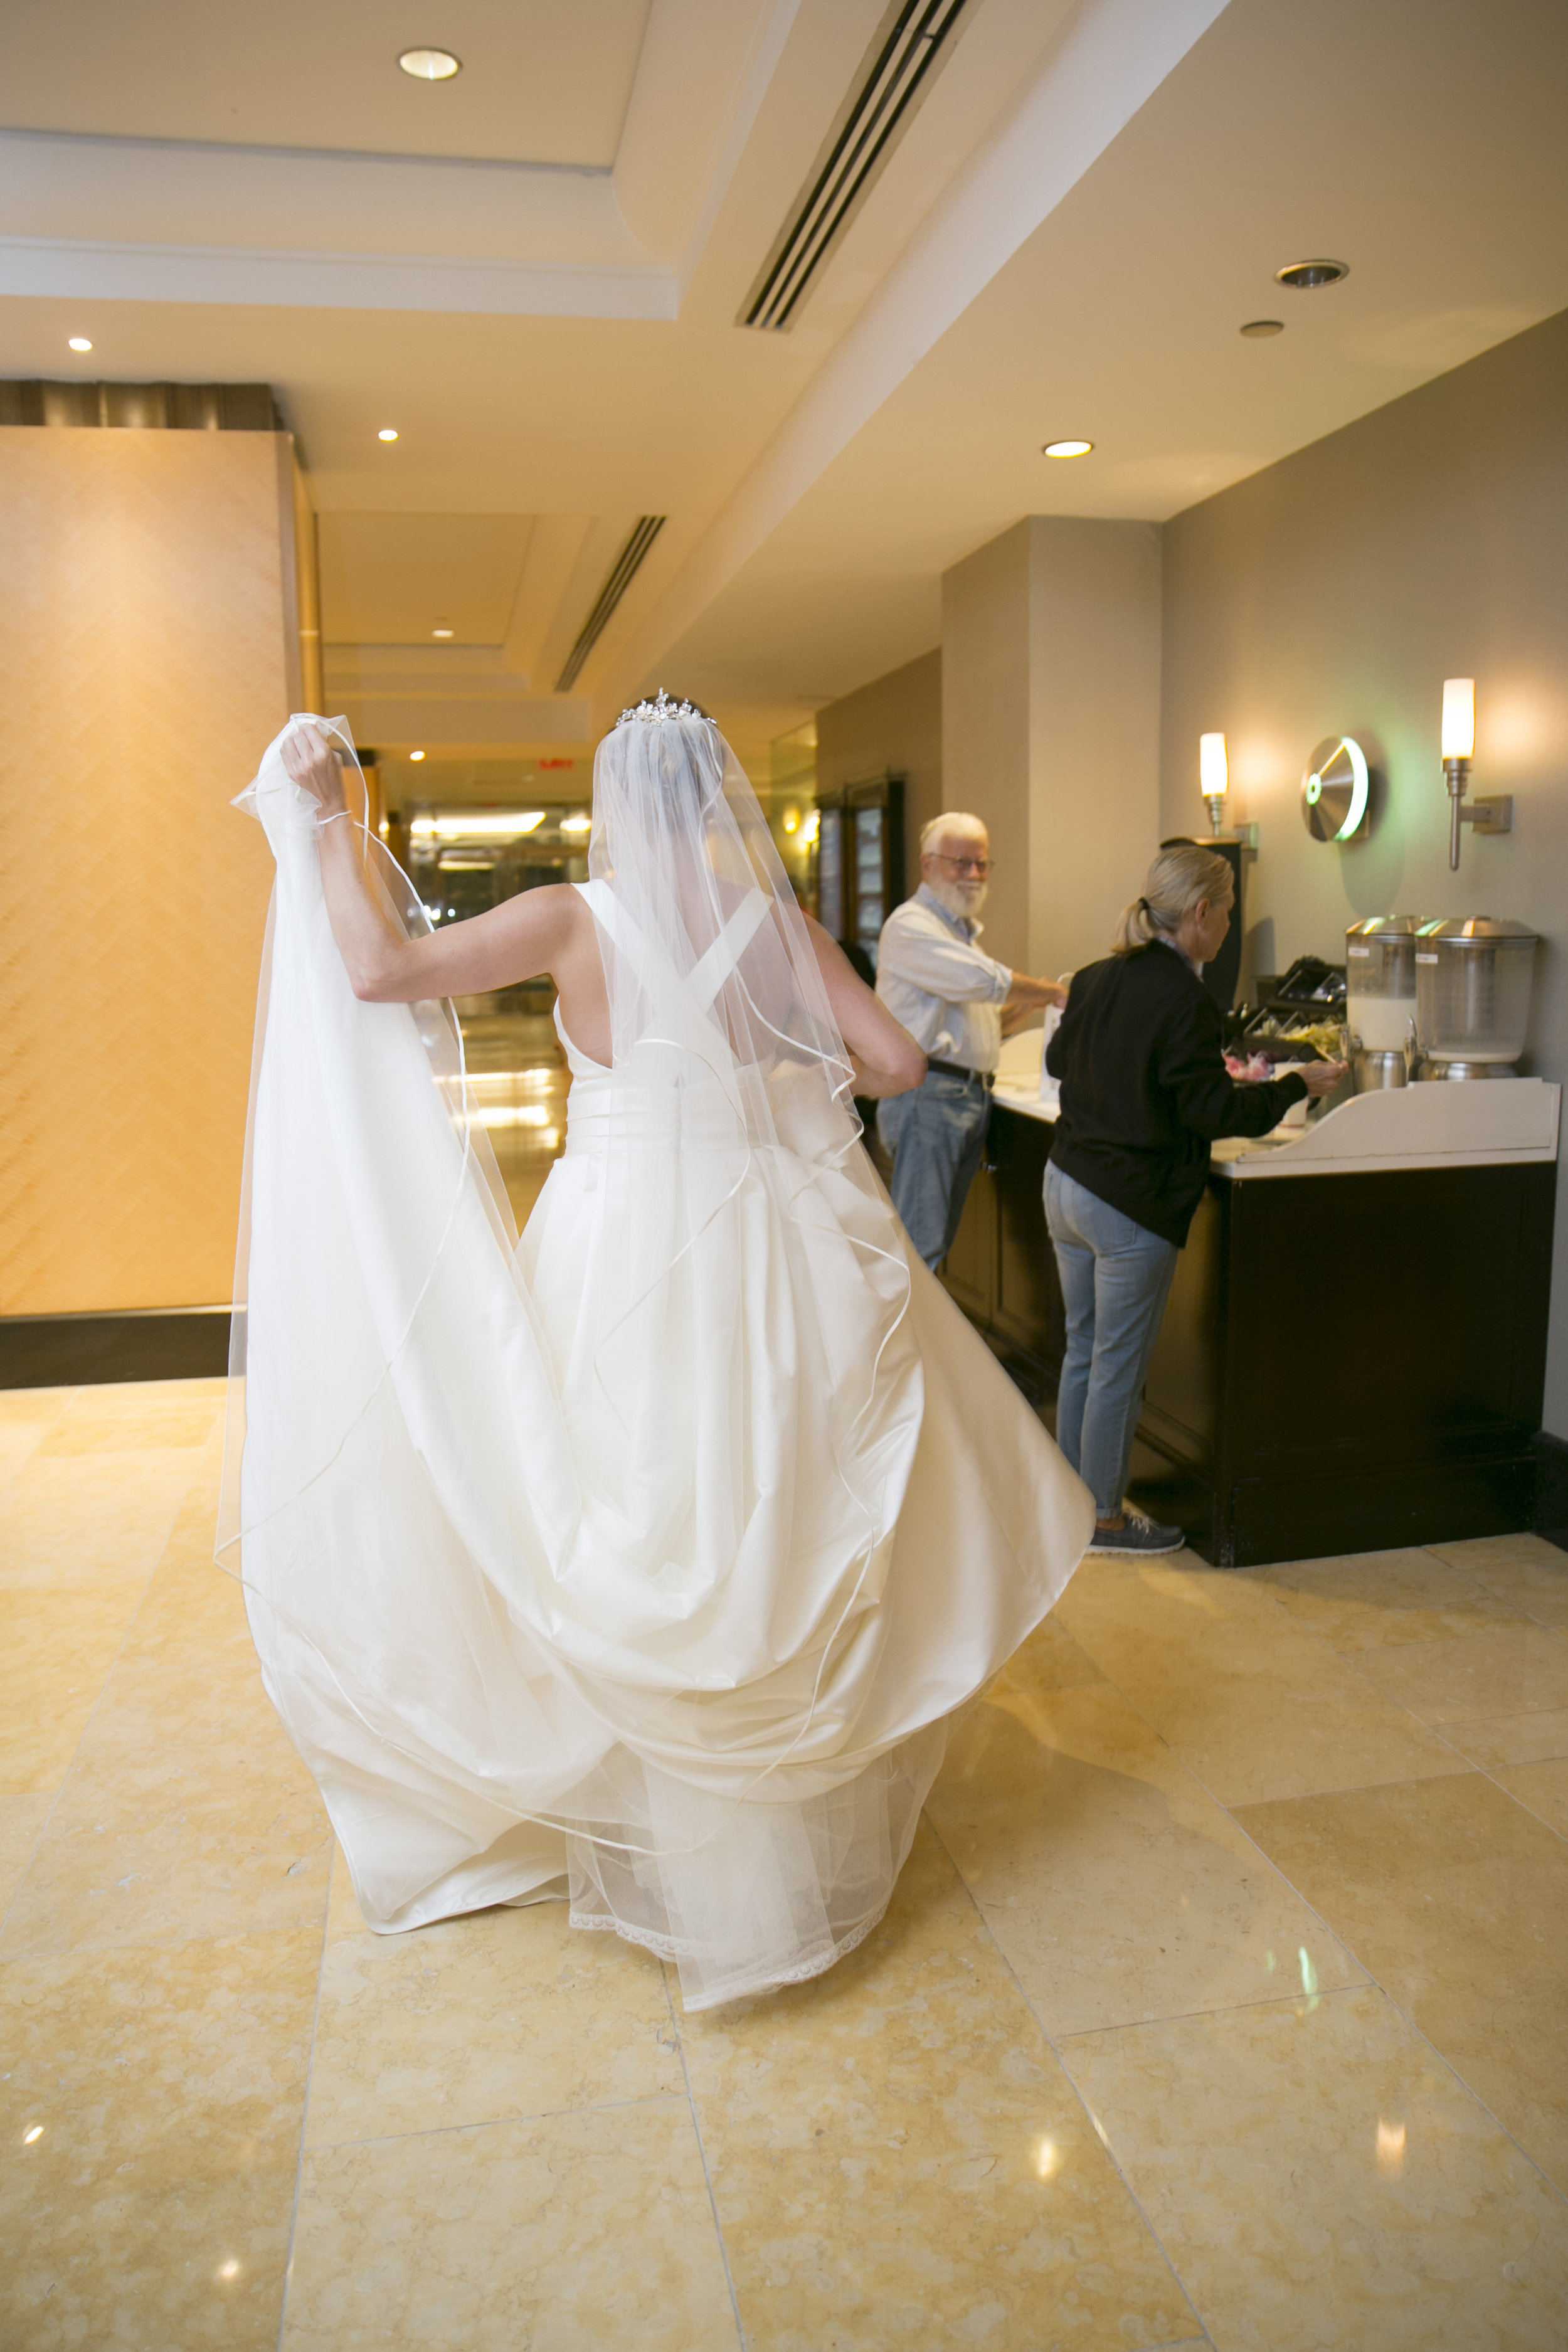 The moment when you walk through the hotel lobby in your wedding dress and everyone stops and stares.